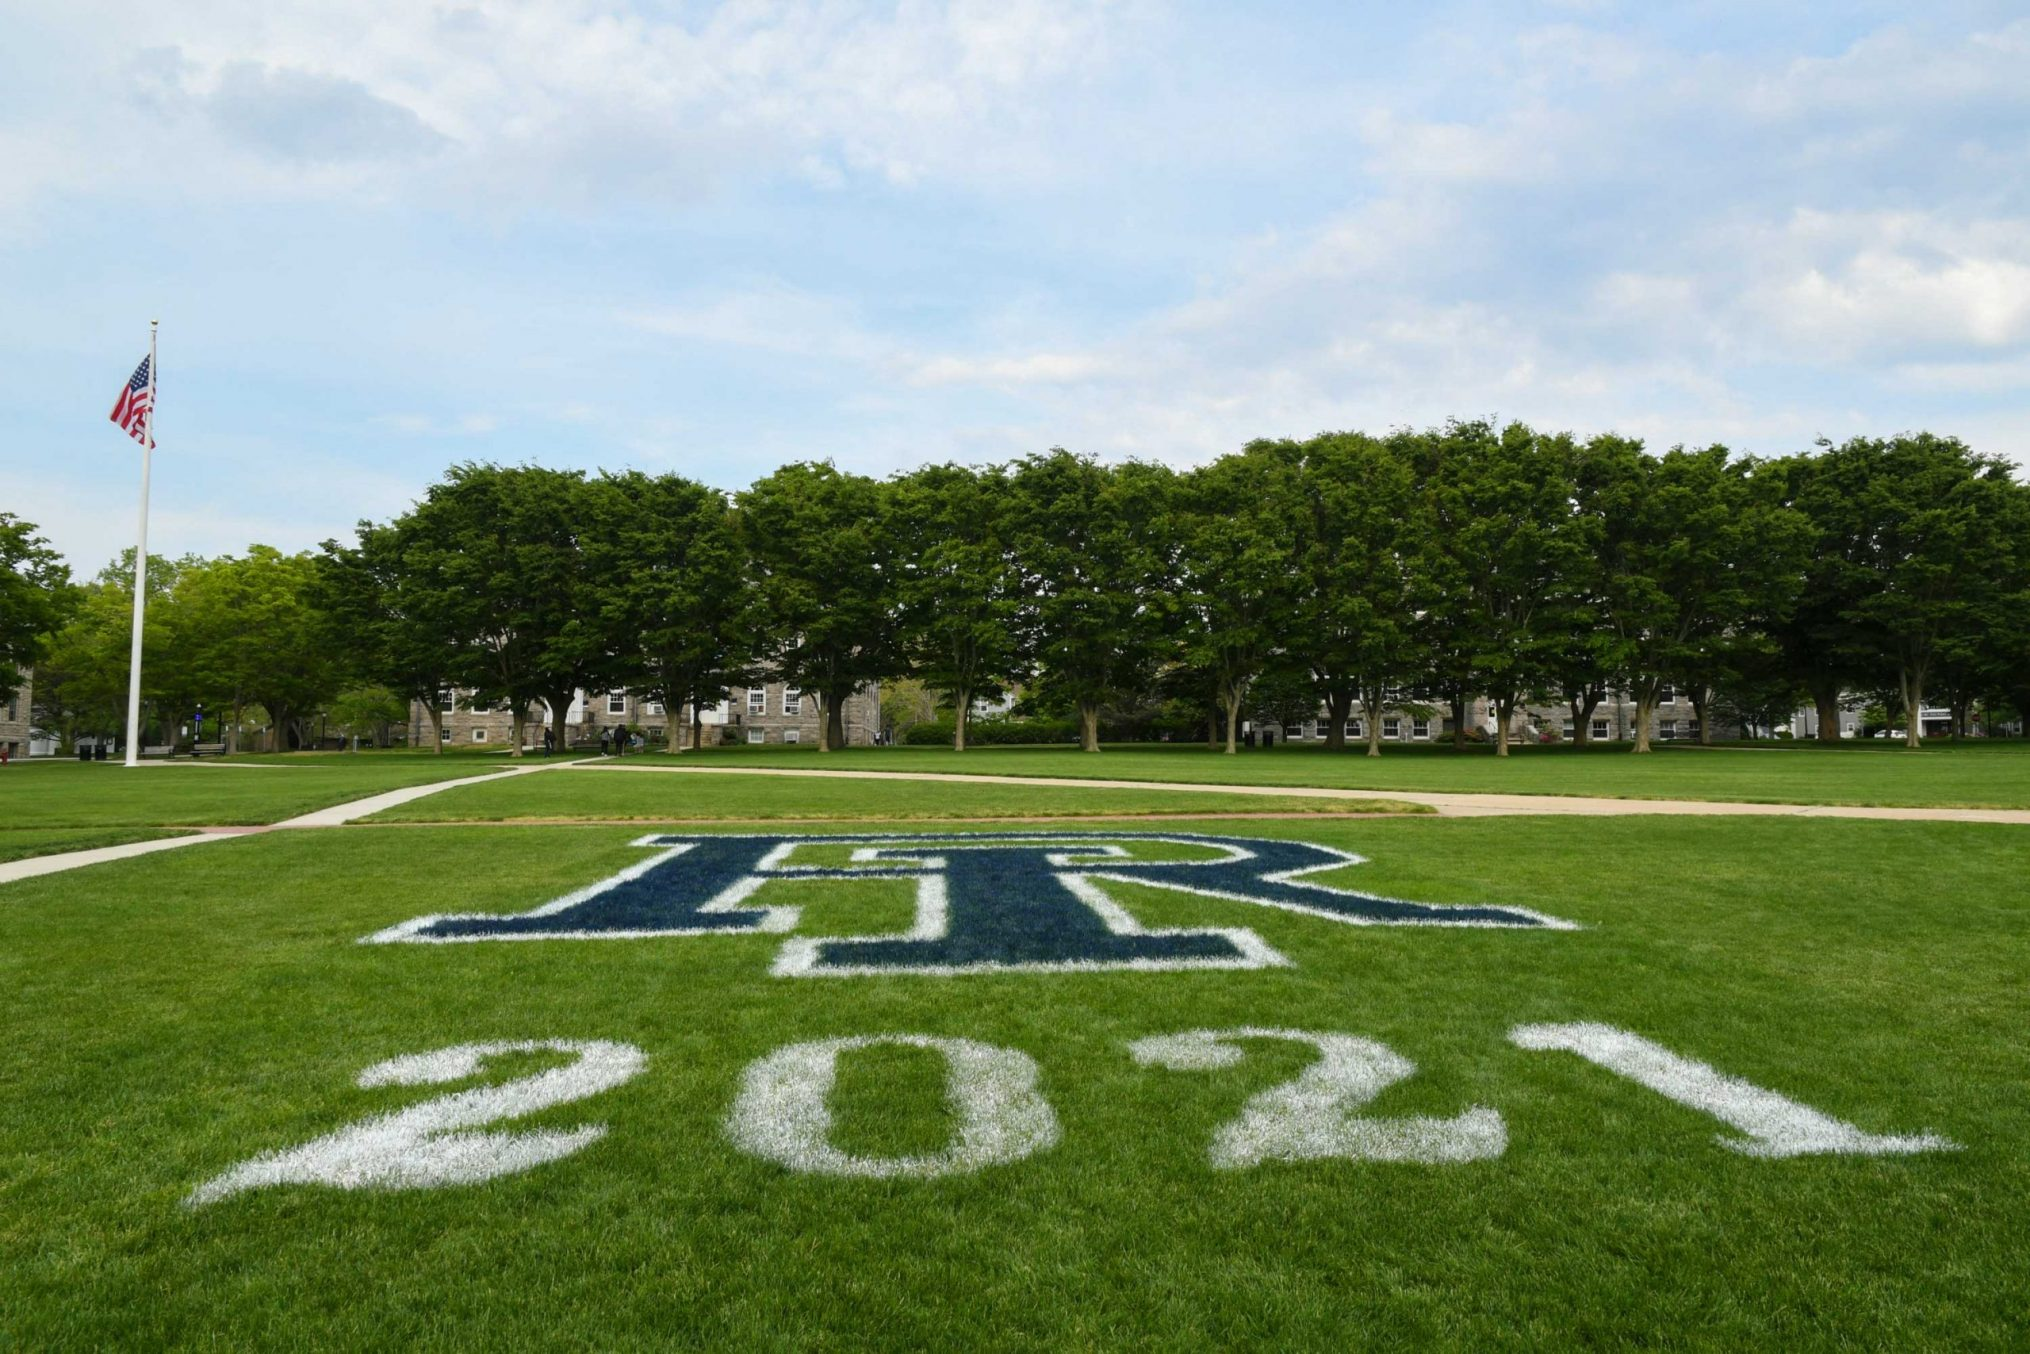 Photo of a sports field on the URI campus with the university logo.